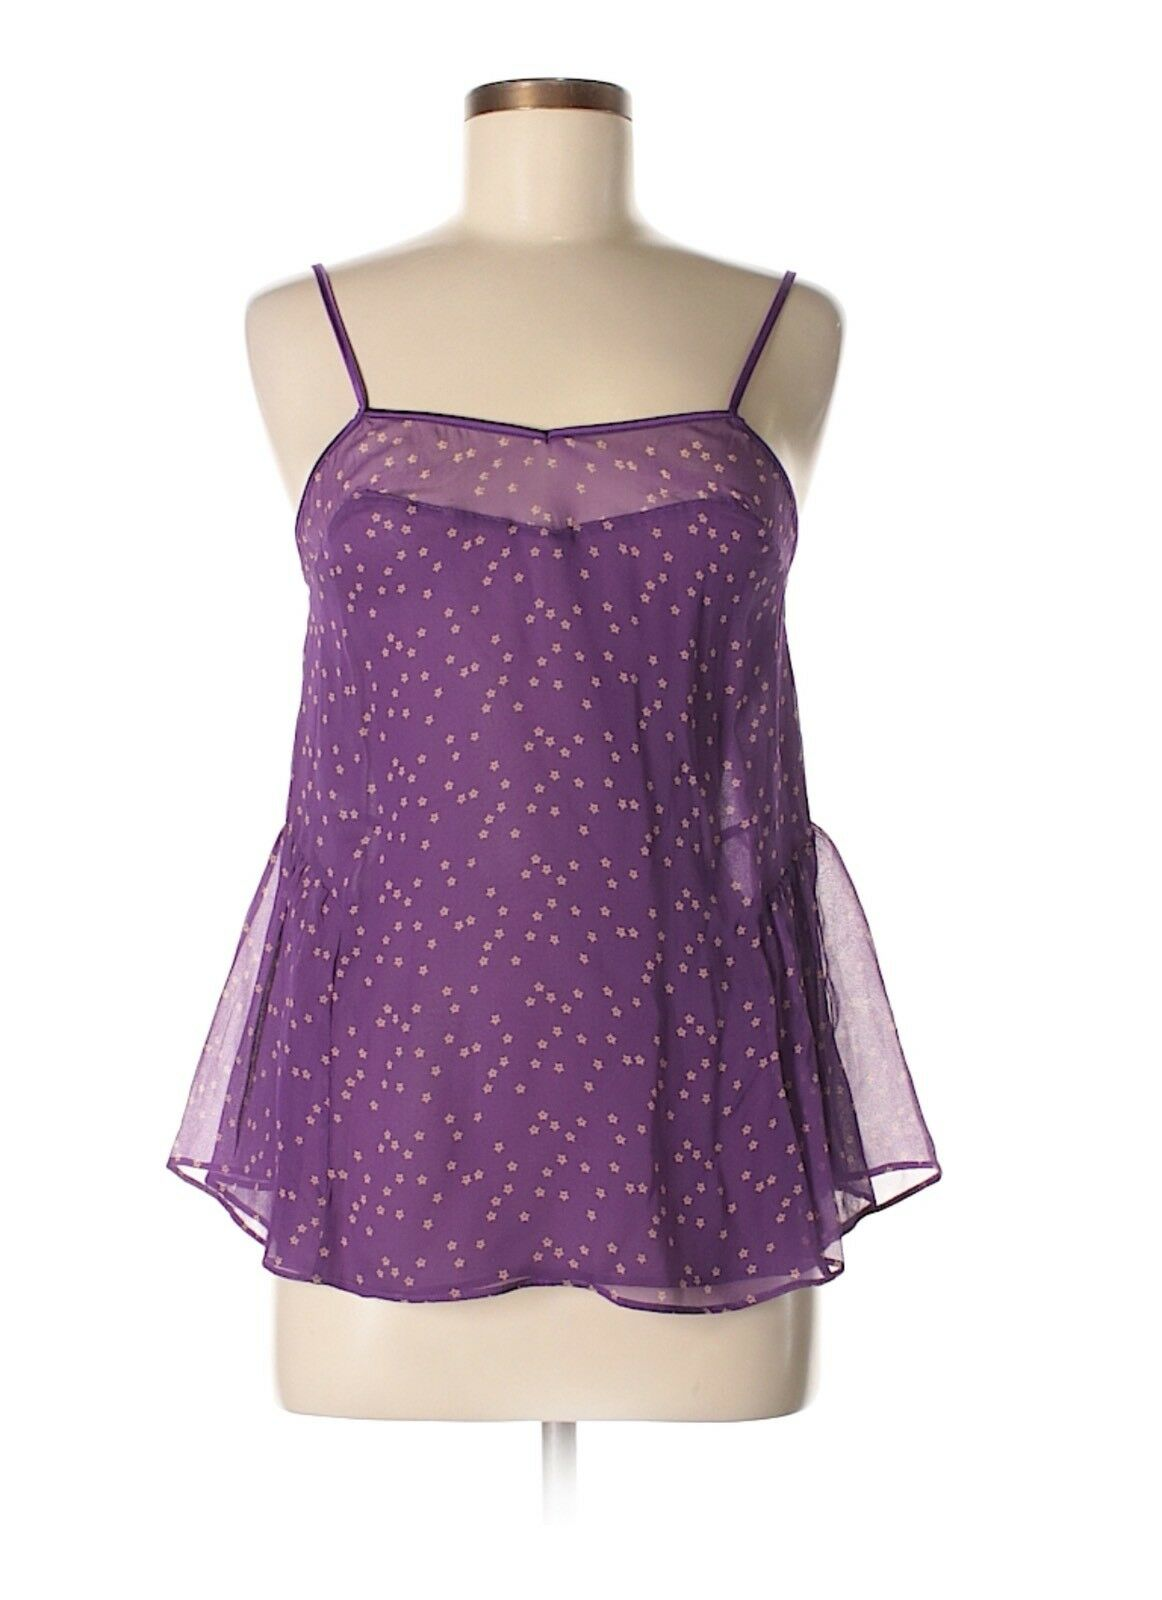 STELLA MCCARTNEY Purple SILK Star Print Camisole Top NEW NWT Med Medium